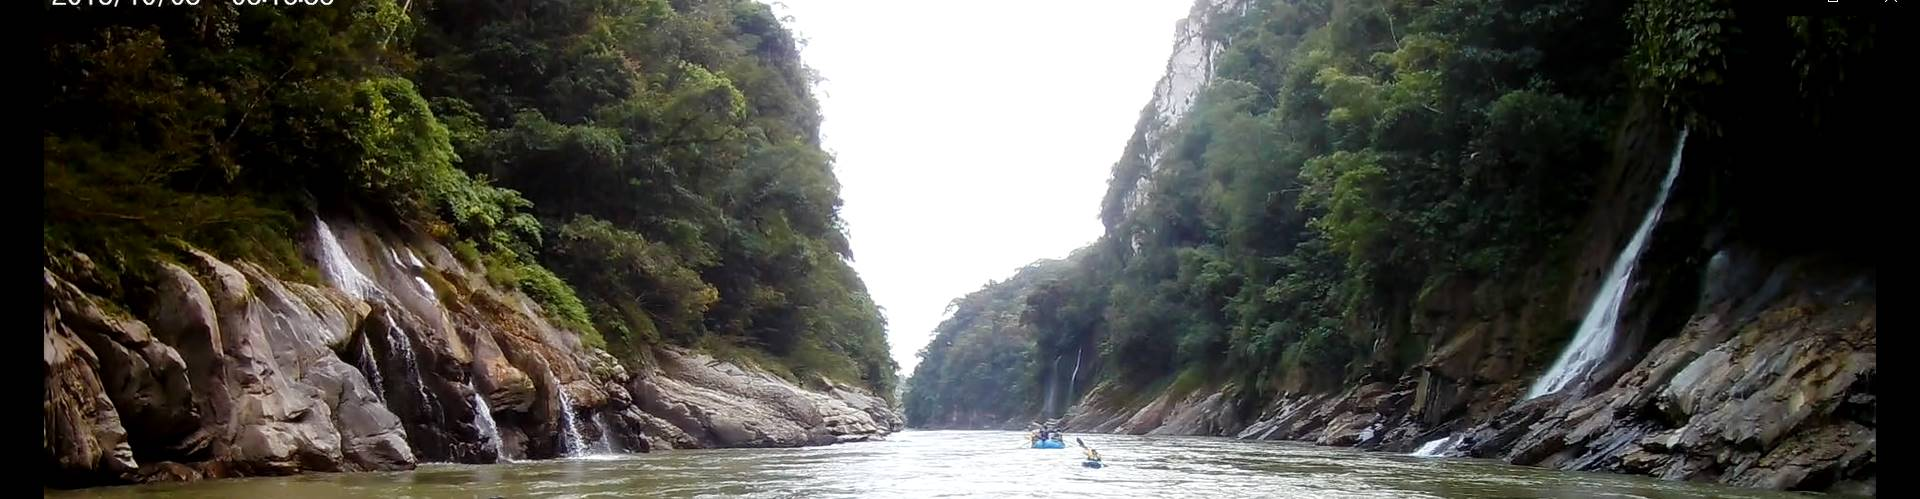 Rafting in the Pongo the Maintique Gorge Peru